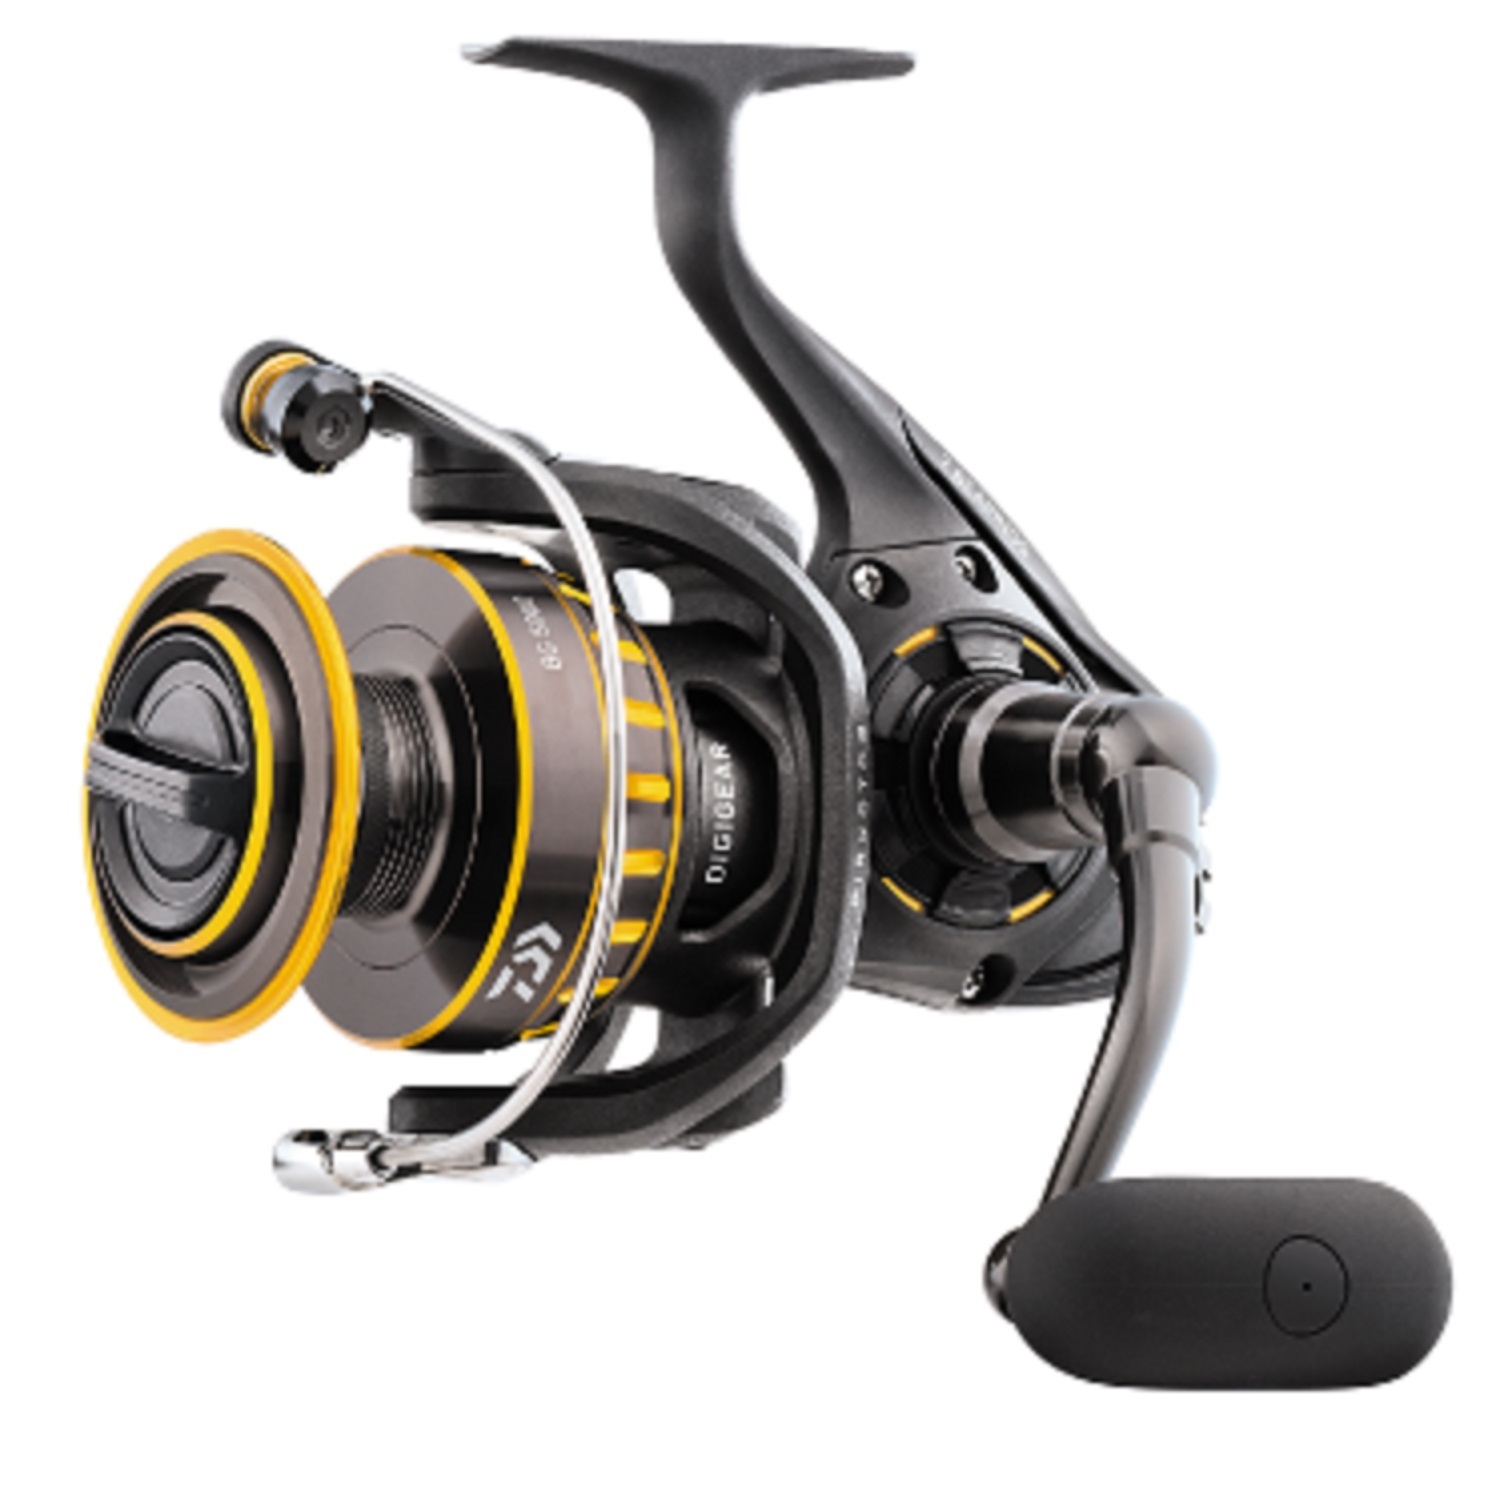 "Daiwa BG Saltwater Spinning Reel 5000, 5.7:1 Gear Ratio, 6+1 Bearings, 47.40"" Retrieve Rate, 22 lb Max Drag"